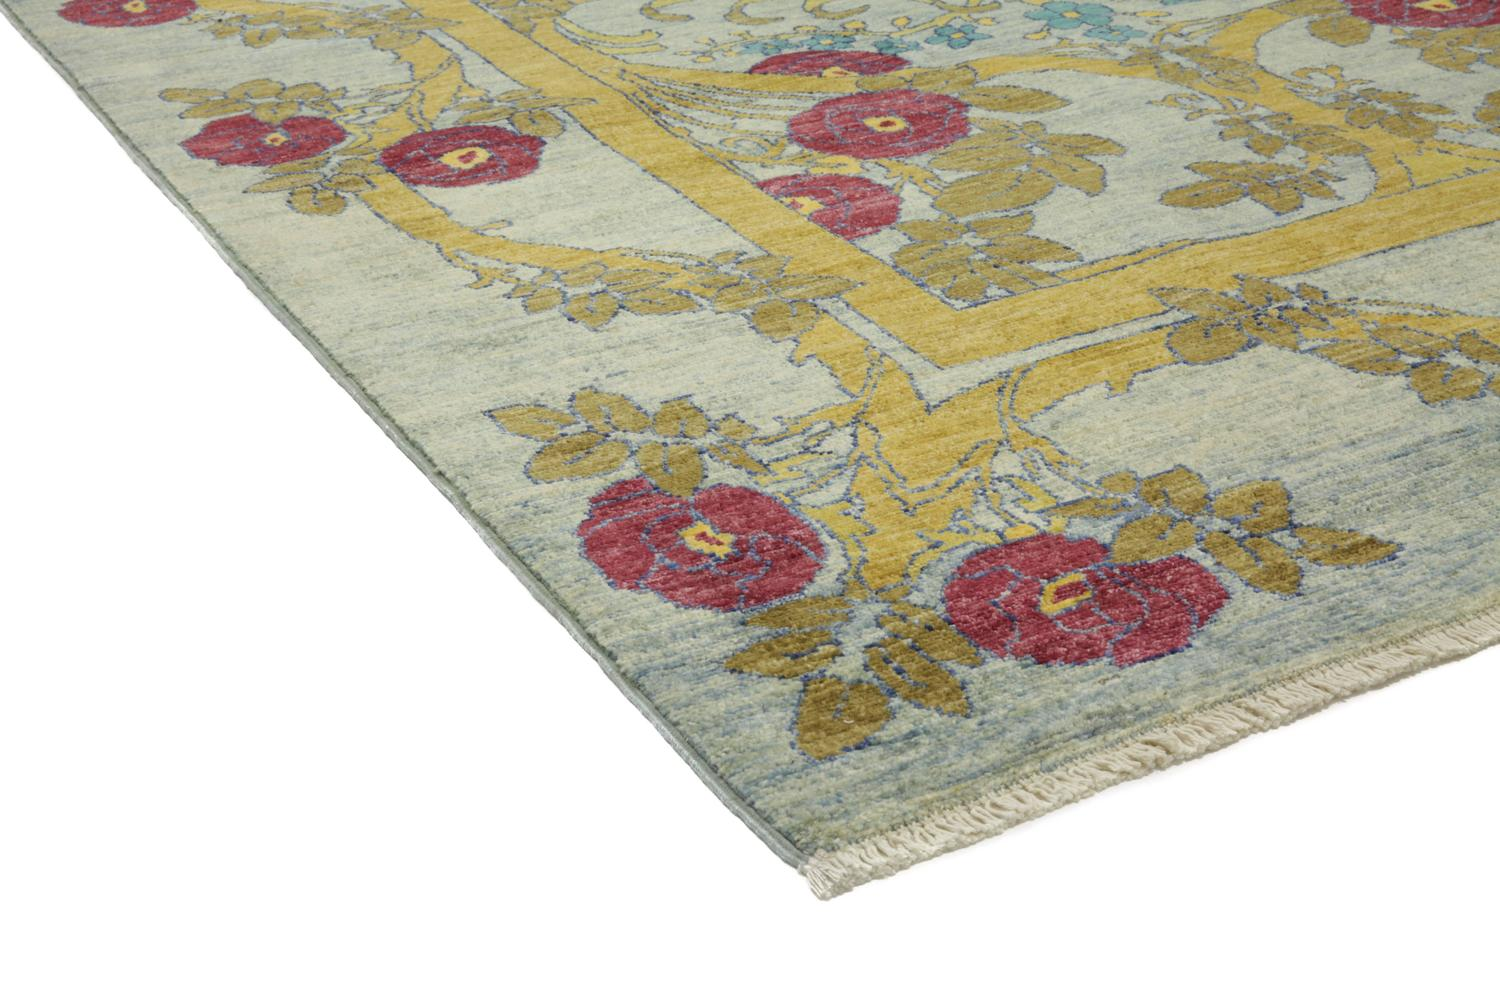 hand knotted rug in the style of an arts and crafts design. Black Bedroom Furniture Sets. Home Design Ideas